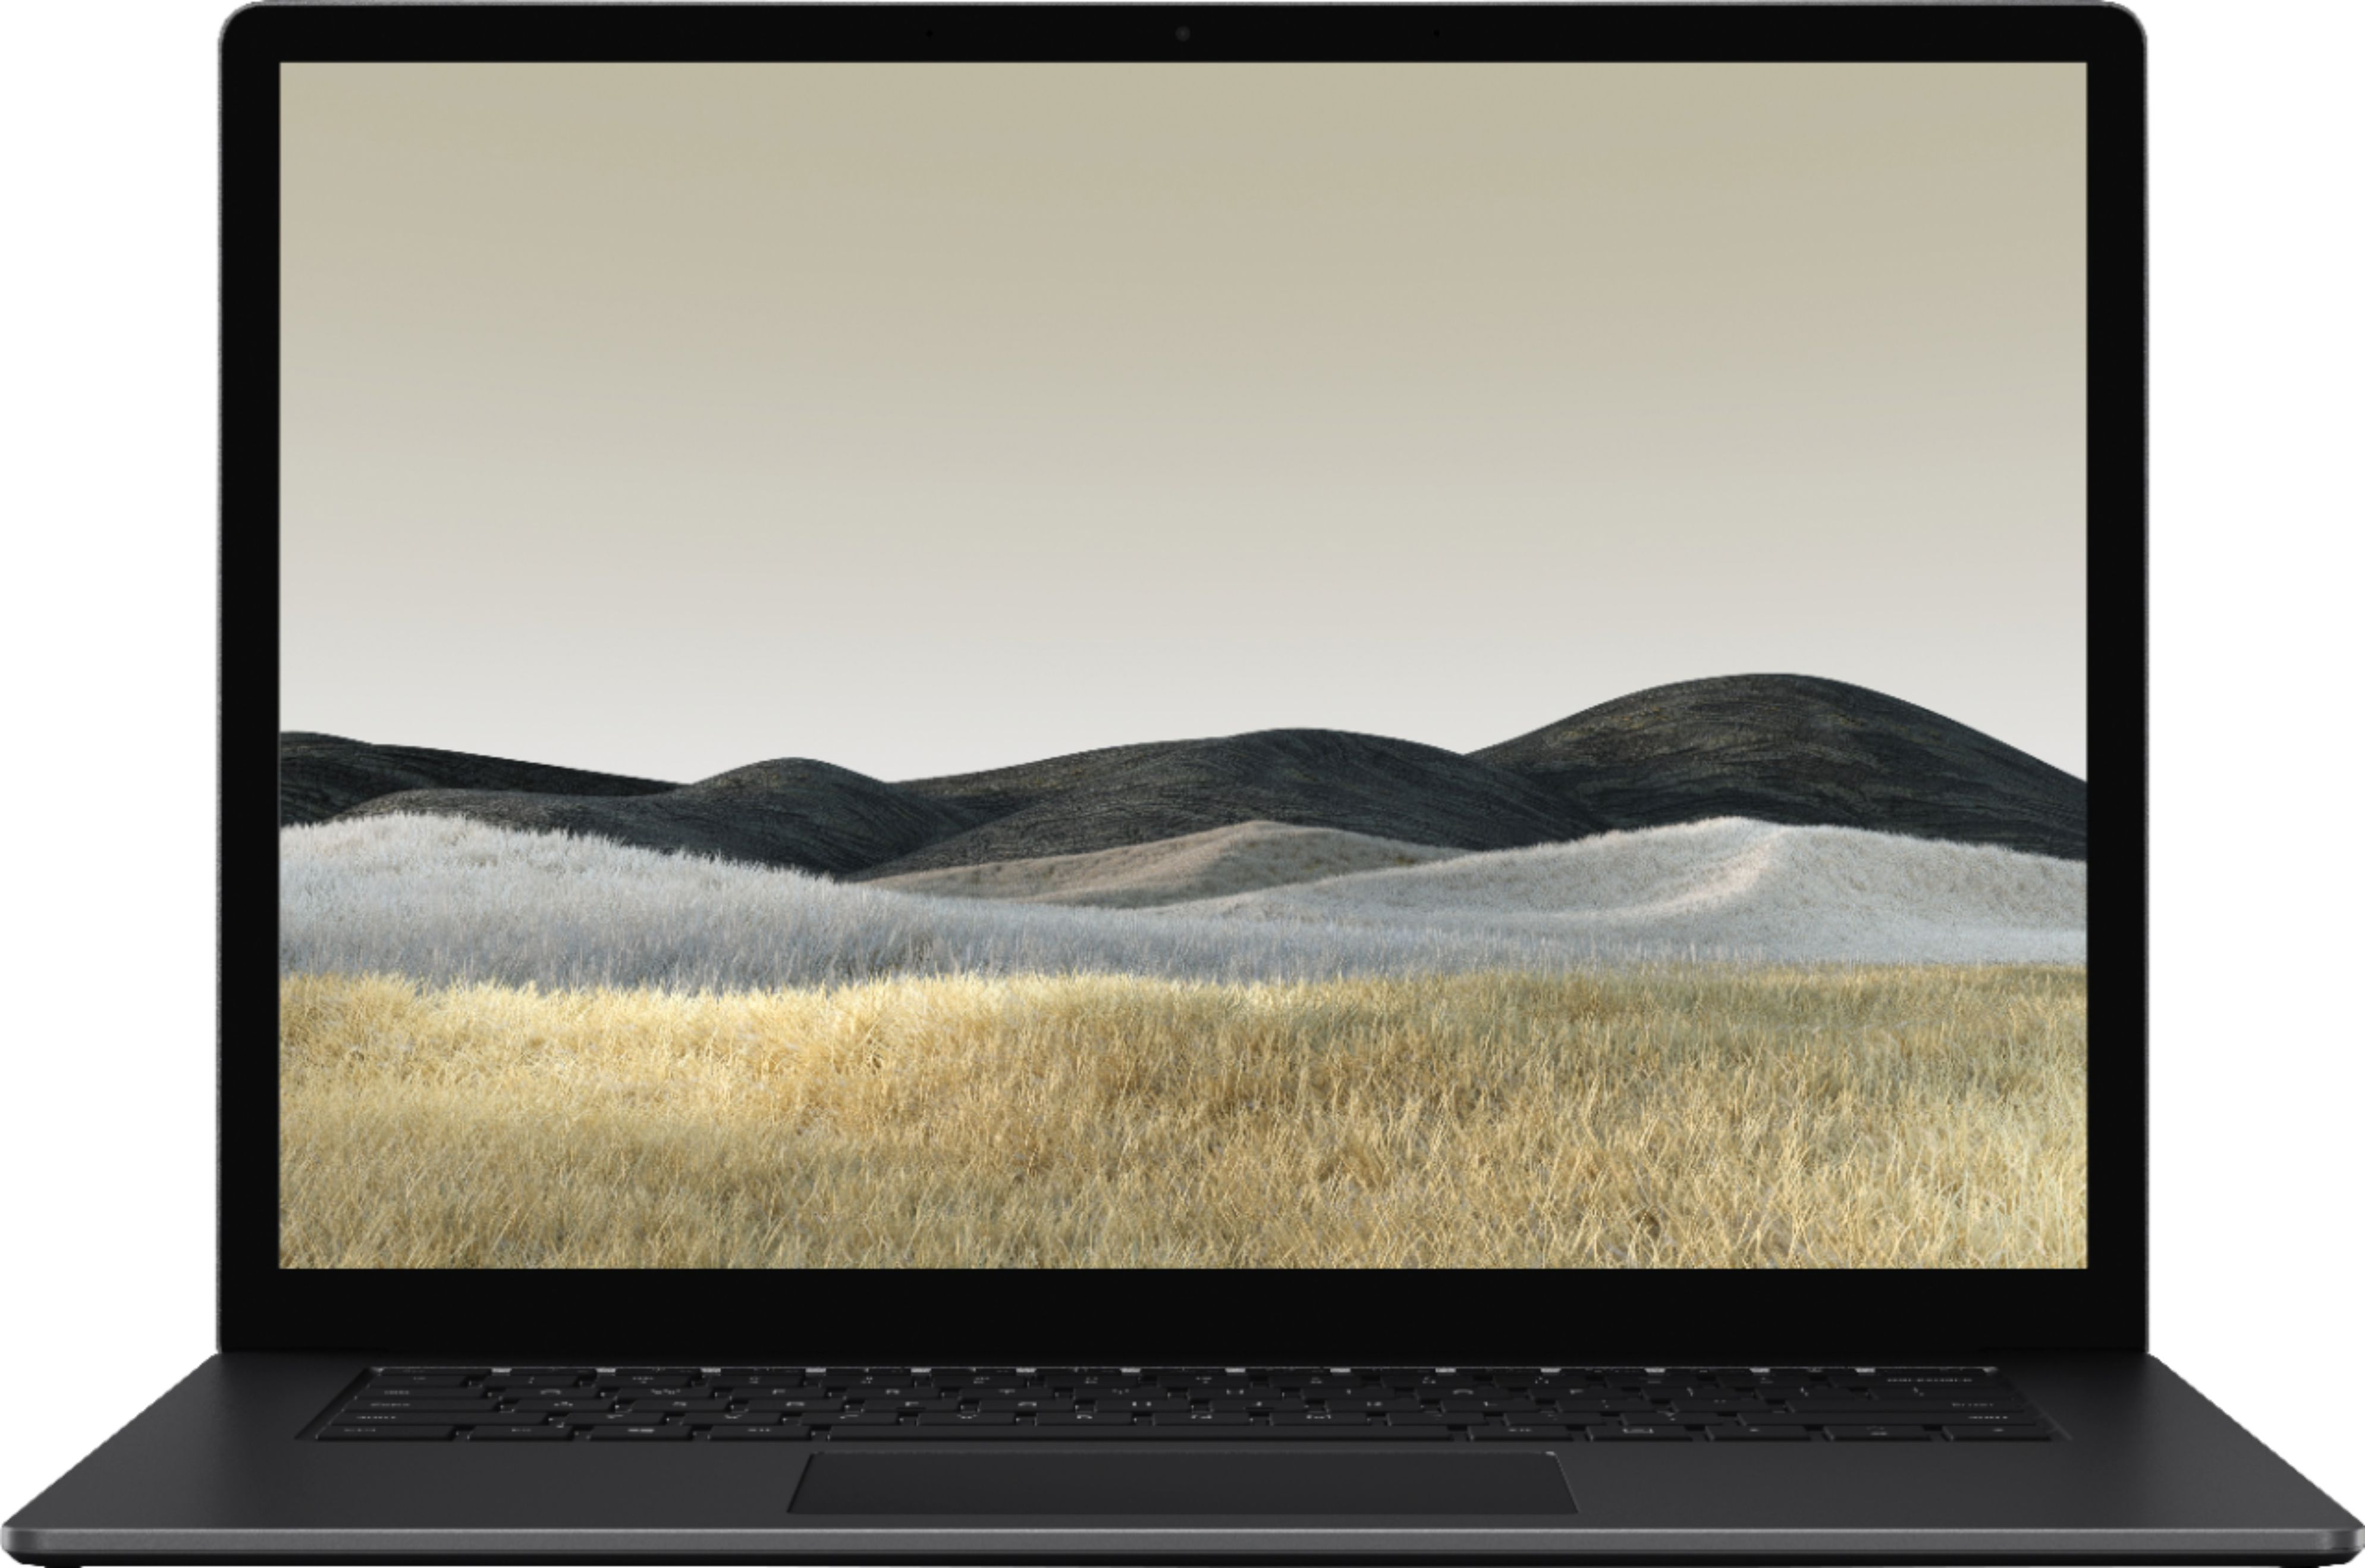 """Alt View Zoom 11. Microsoft - Surface Laptop 3 - 15"""" Touch-Screen - AMD Ryzen™ 5 Surface Edition - 8GB Memory - 256GB SSD (Latest Model) - Matte Black."""